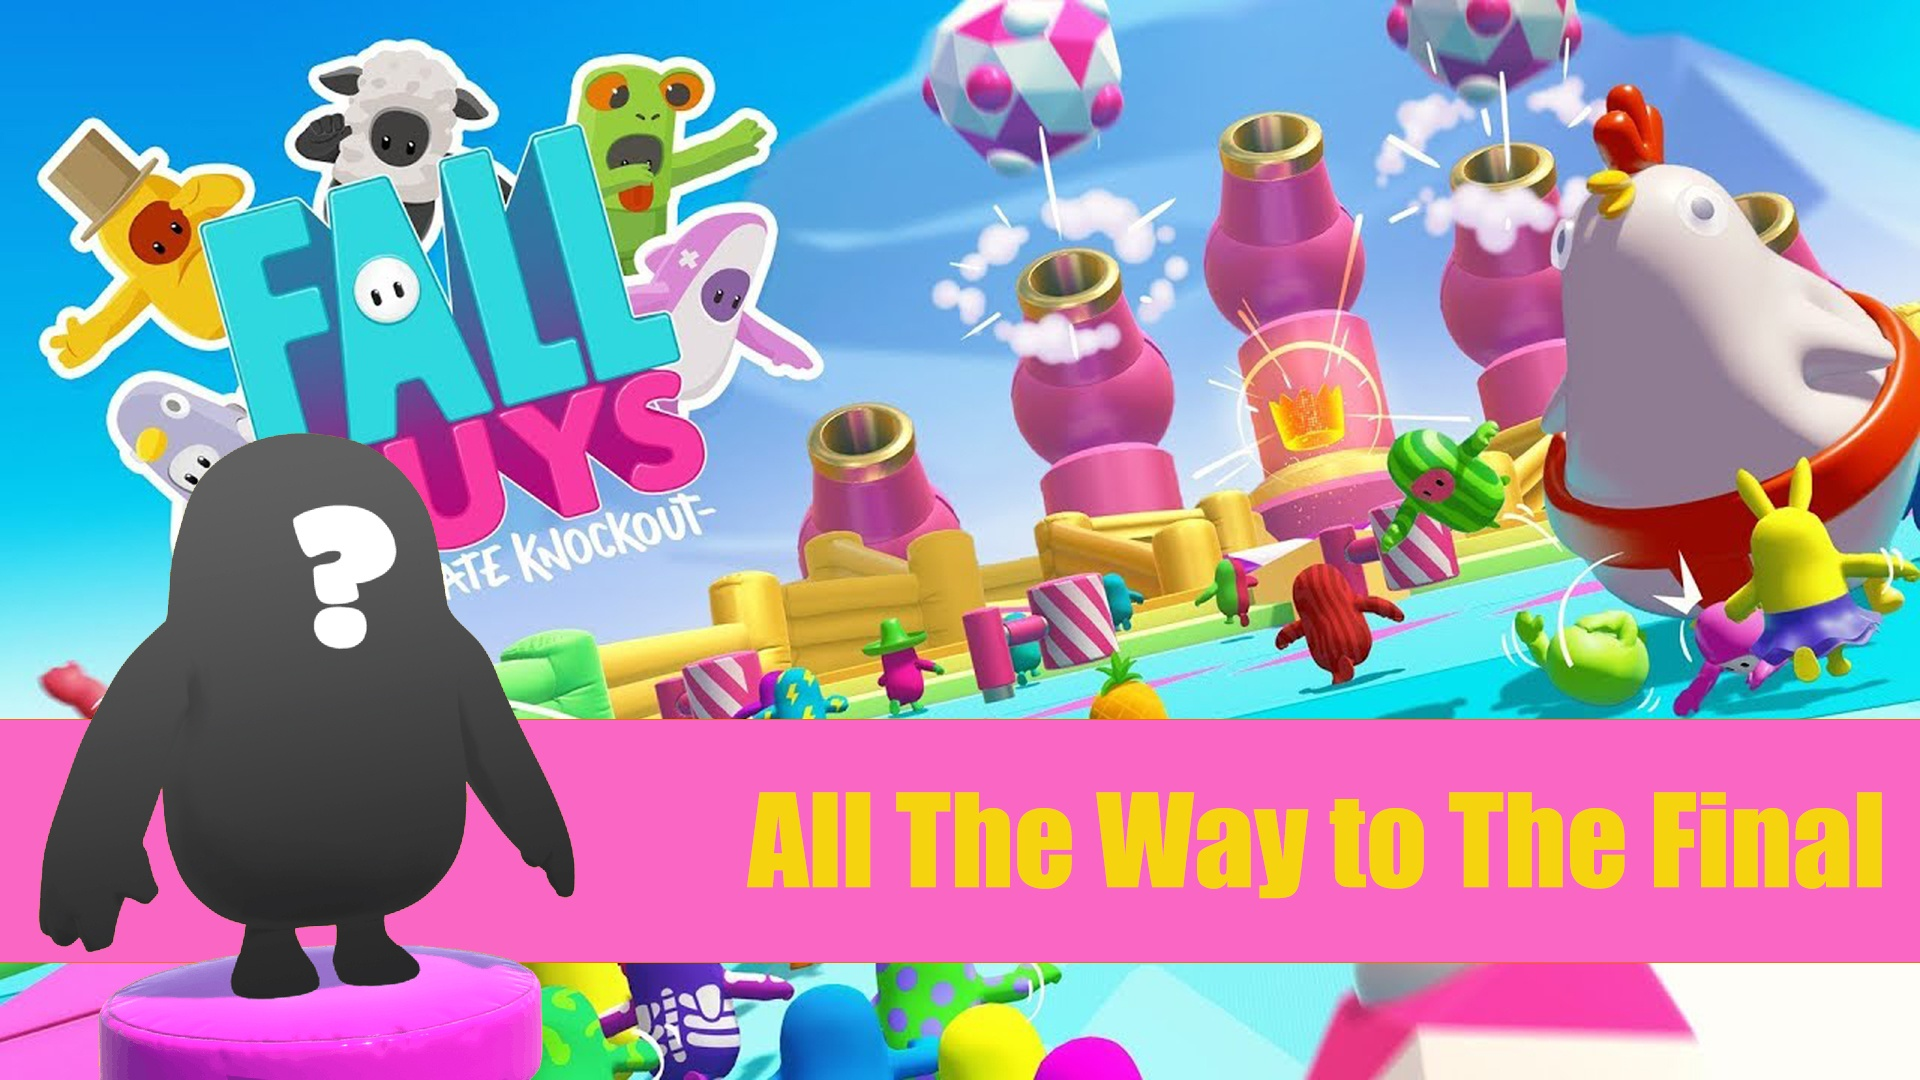 Fall Guys – All The Way to The Final